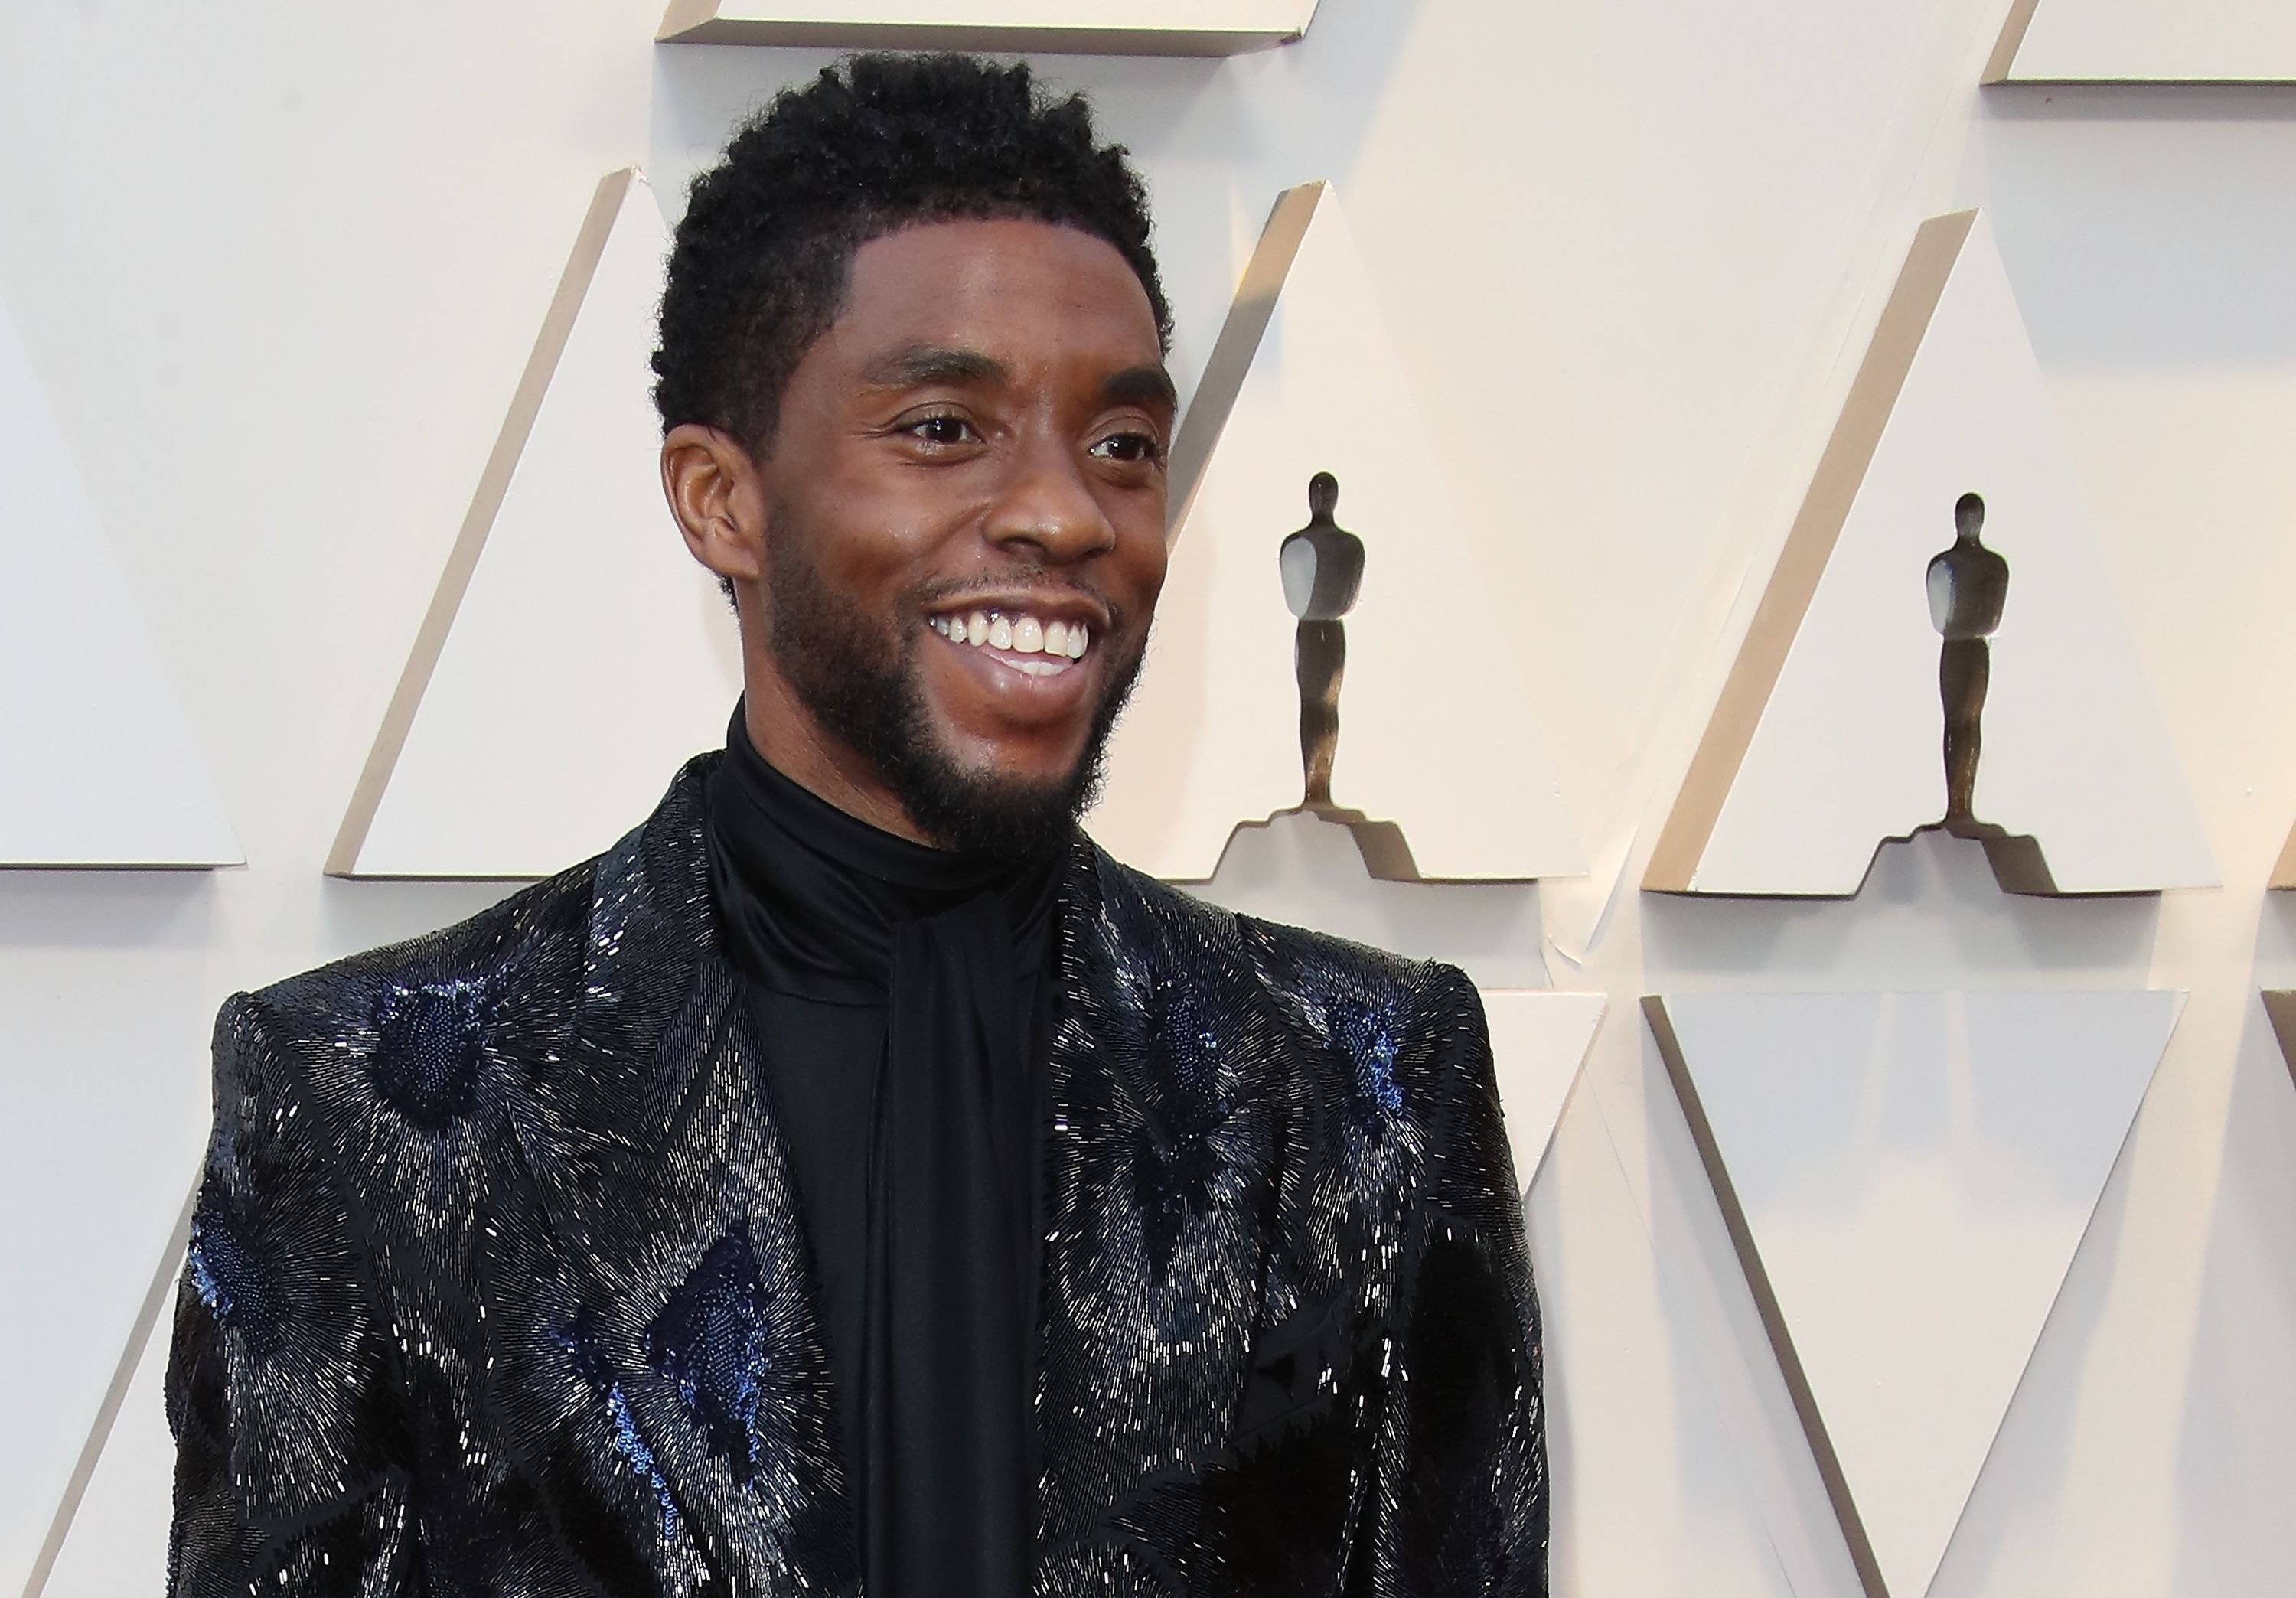 Chadwick Boseman at the 91st Annual Academy Awards at Hollywood and Highland on February 24 2019 in Hollywood, California | Photo: Getty Images